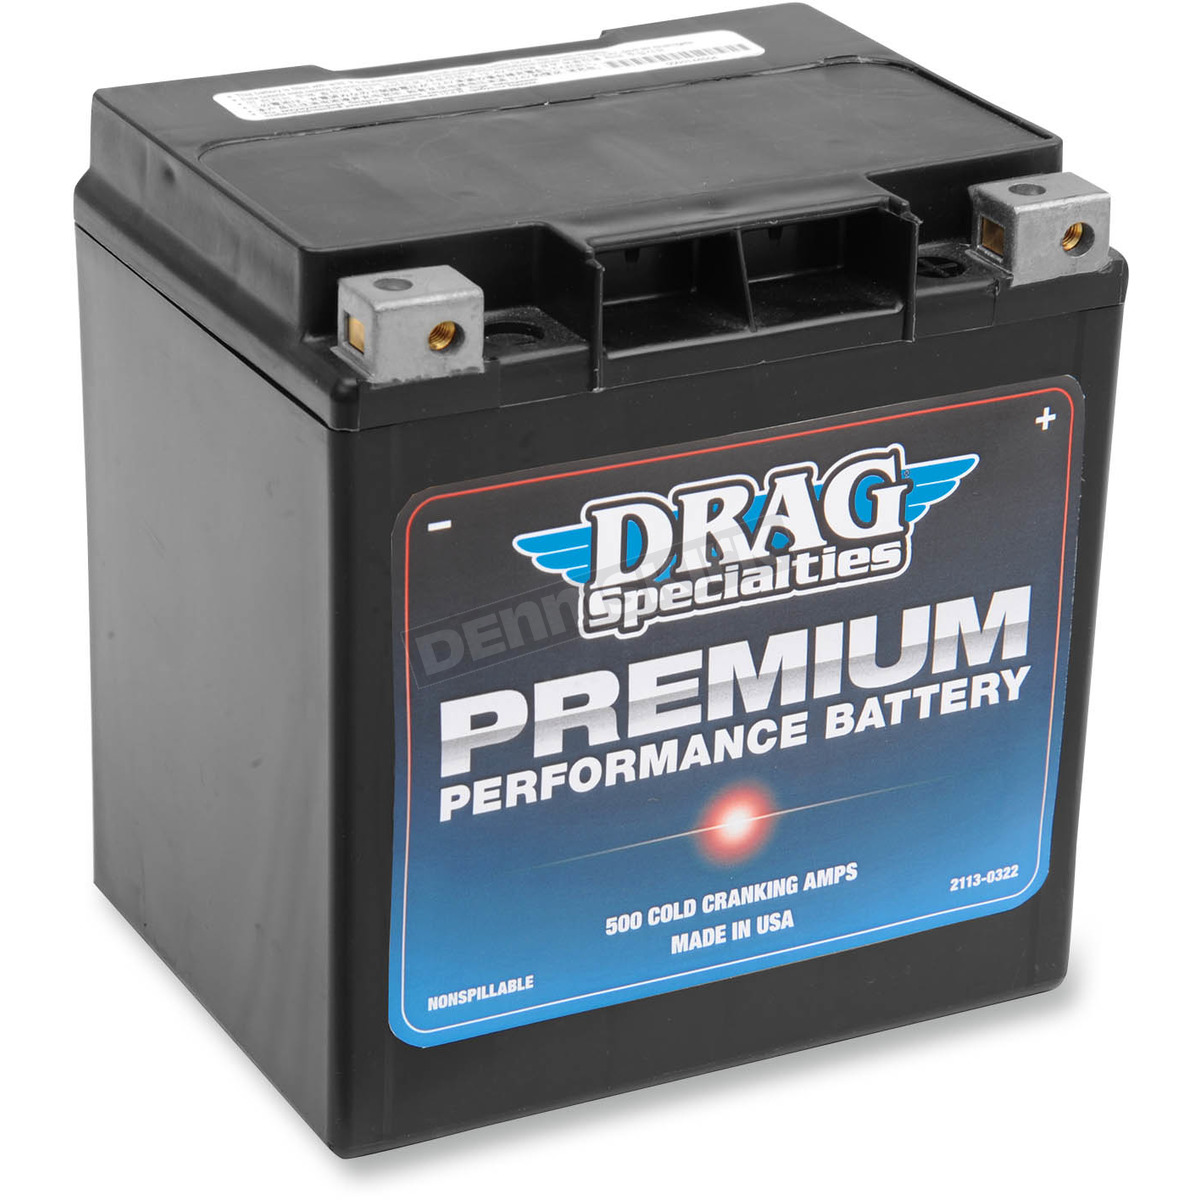 Harley Davidson Battery >> Drag Specialties Premium Performance 12 Volt Agm Battery 2113 0322